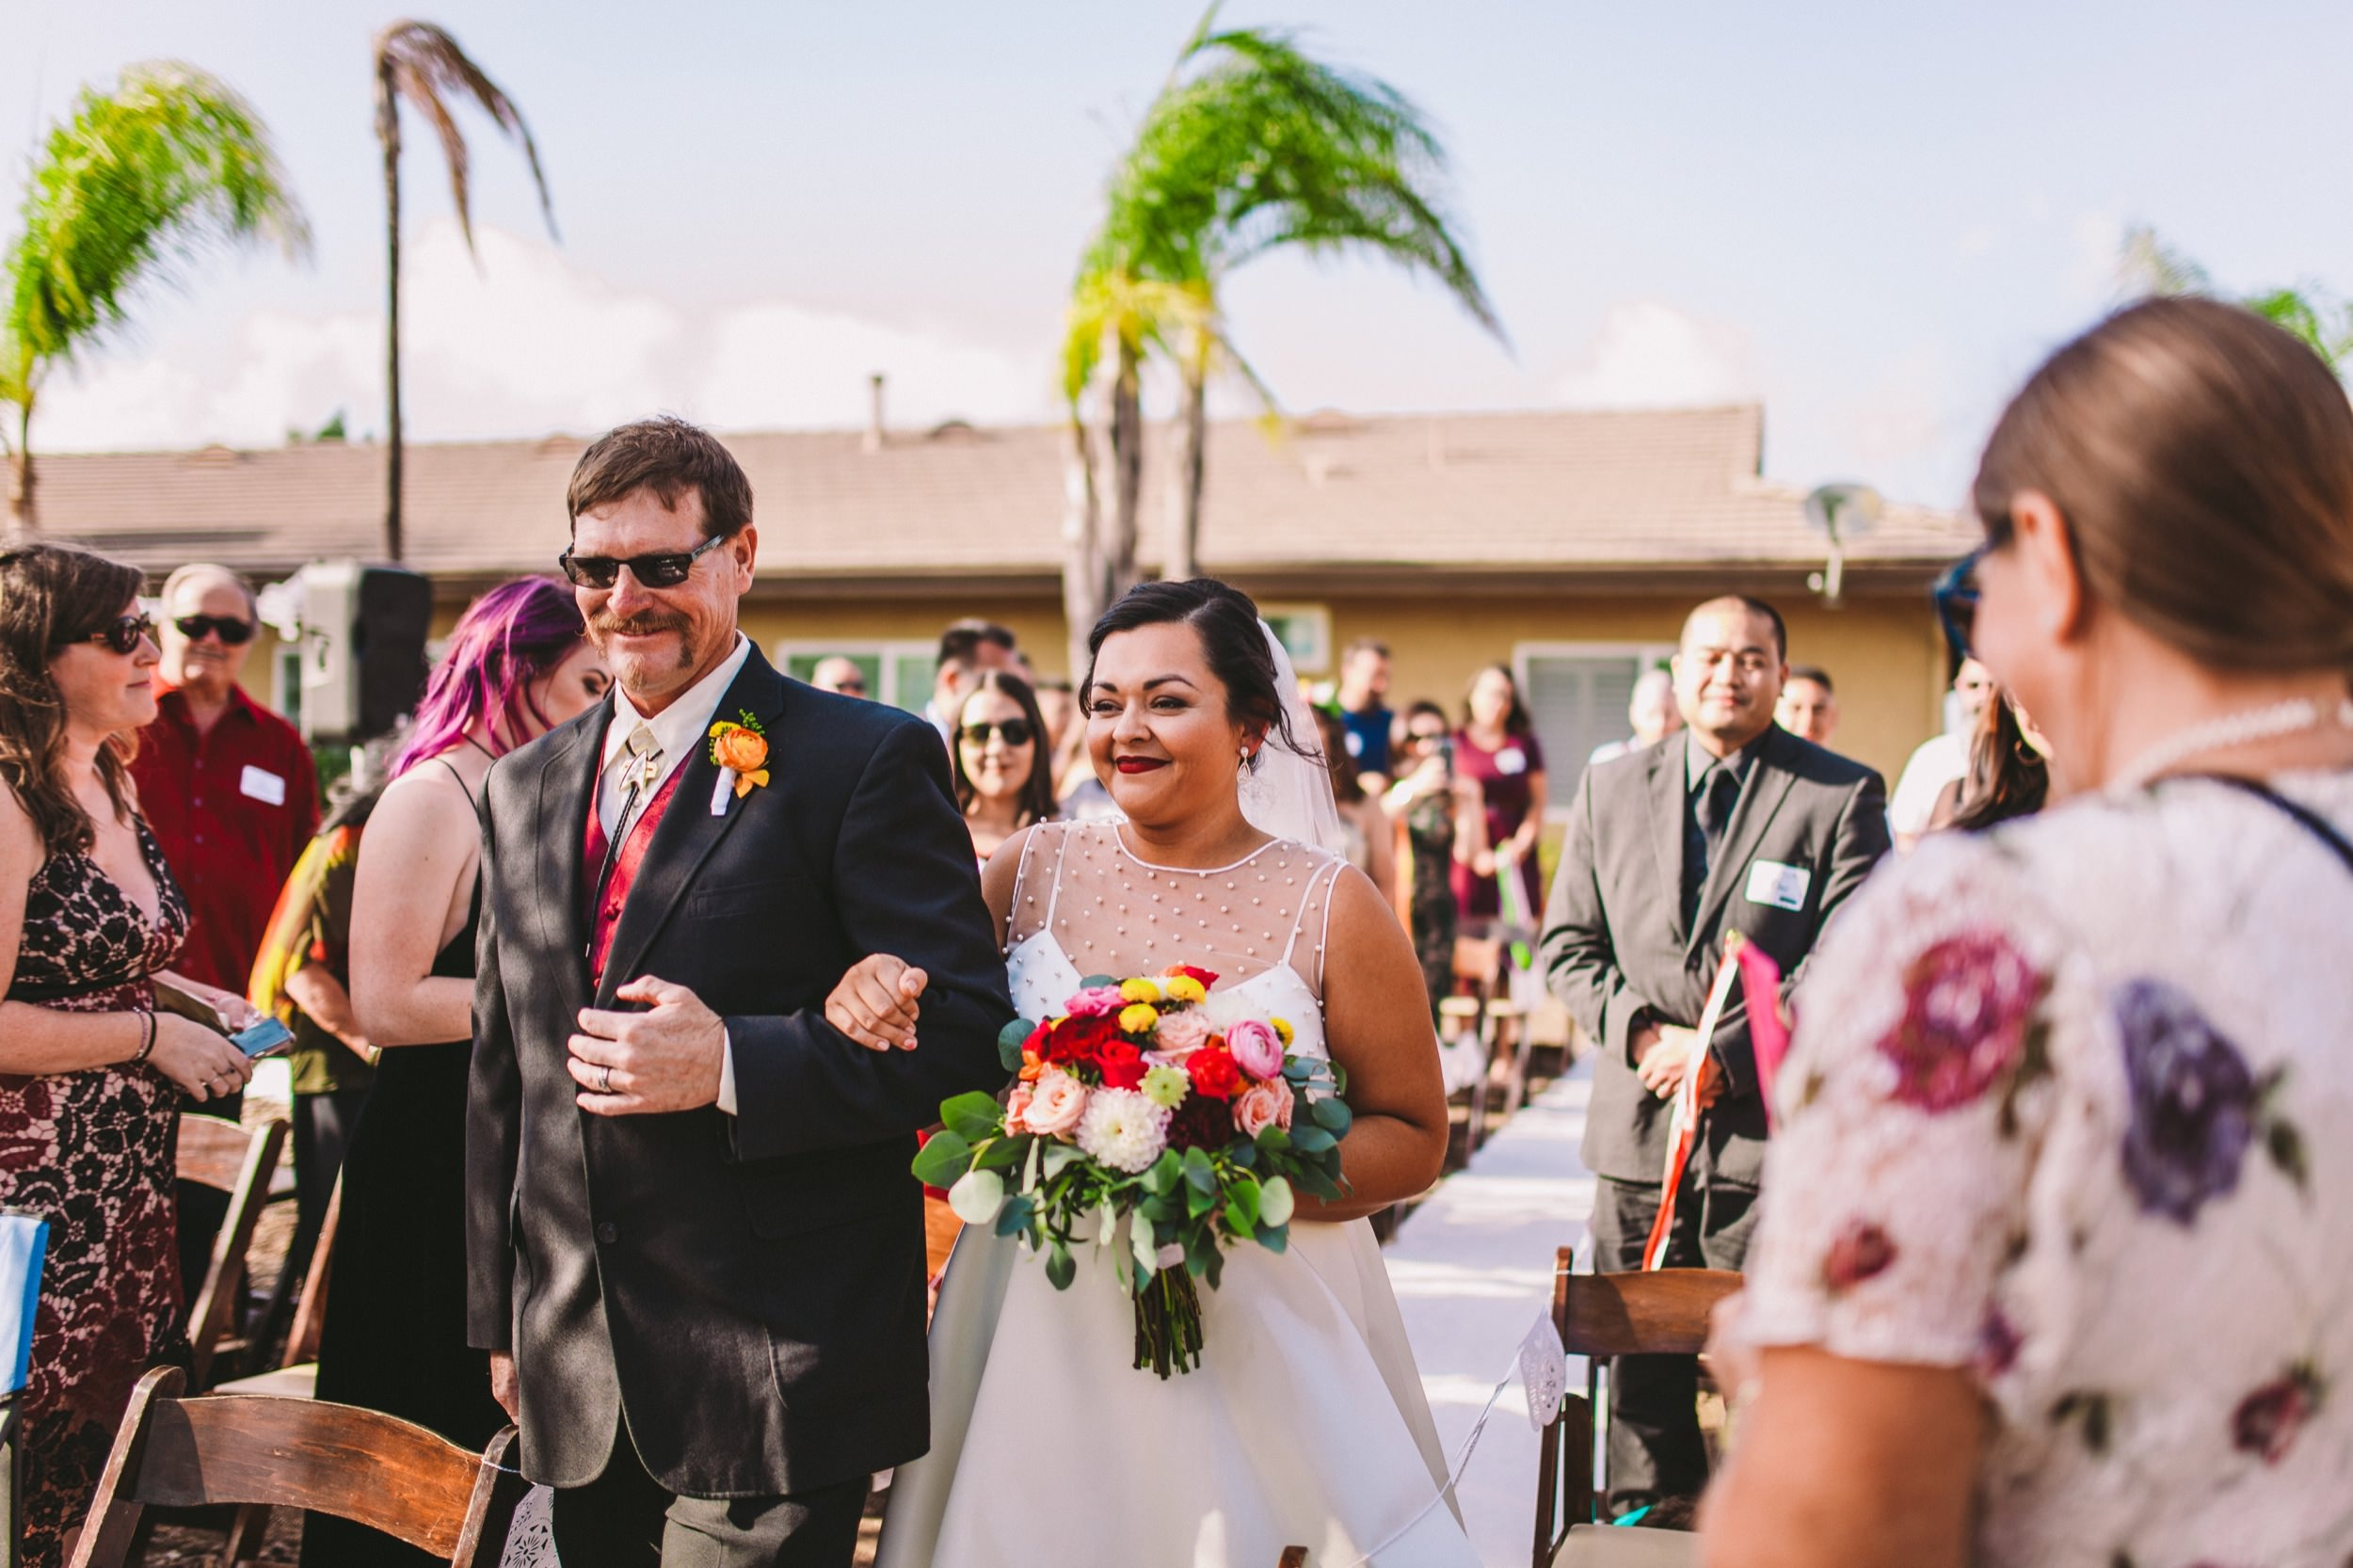 Intimate, Relaxed & Colorful Wedding Photography in Temecula-122.jpg